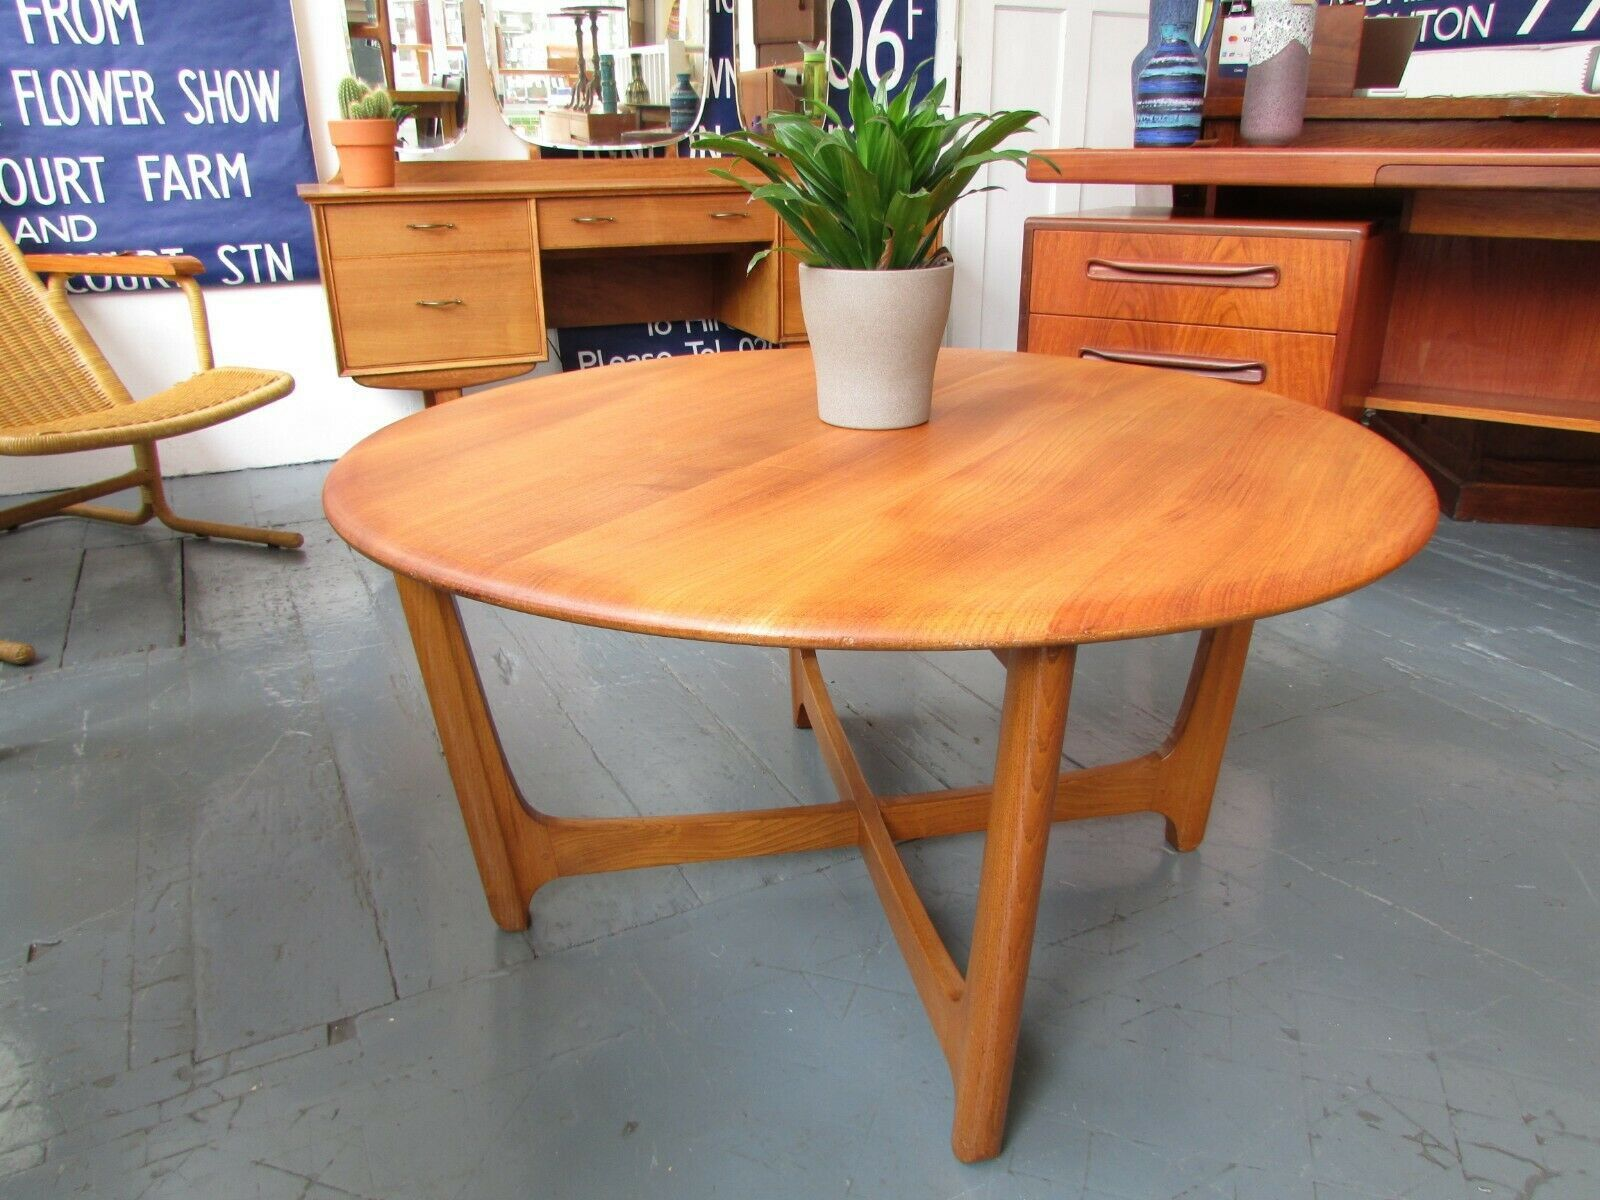 1970s Ercol Wychwood Round Coffee Table In Elm Vintage Retro Mid Century Round Coffee Table Table Furniture Mid Century